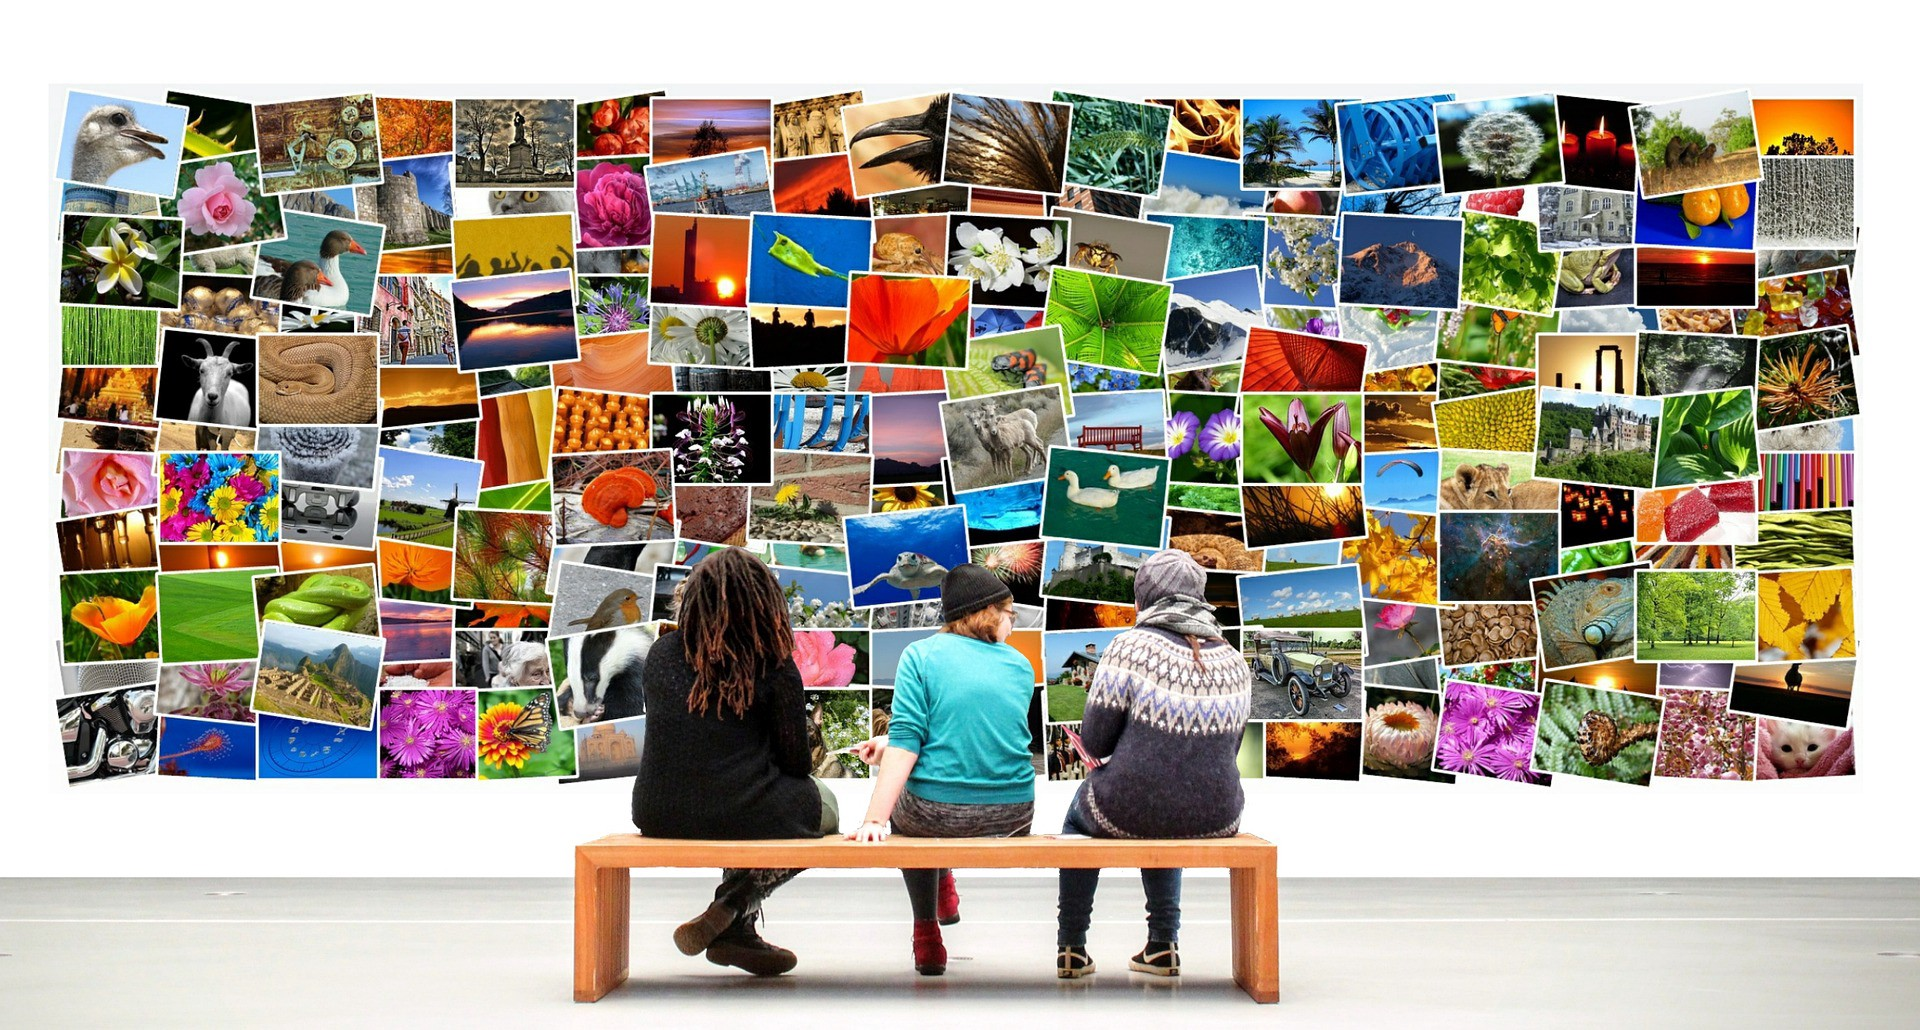 Can You Make a Decent Living Selling Your Art and Photography Online?